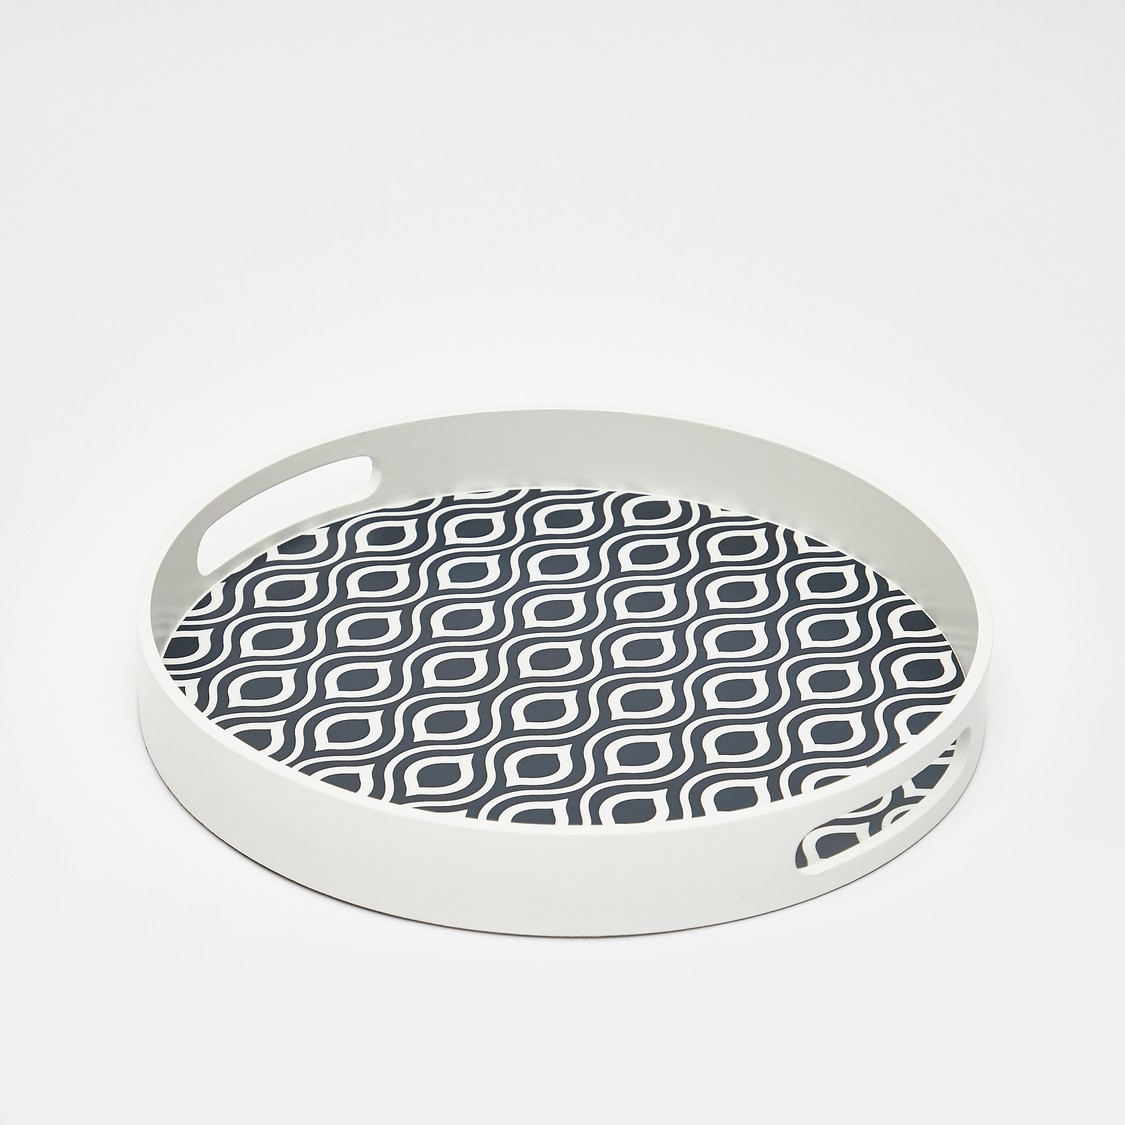 Printed Round Serving Tray with Cutout Handle - 30x4 cms